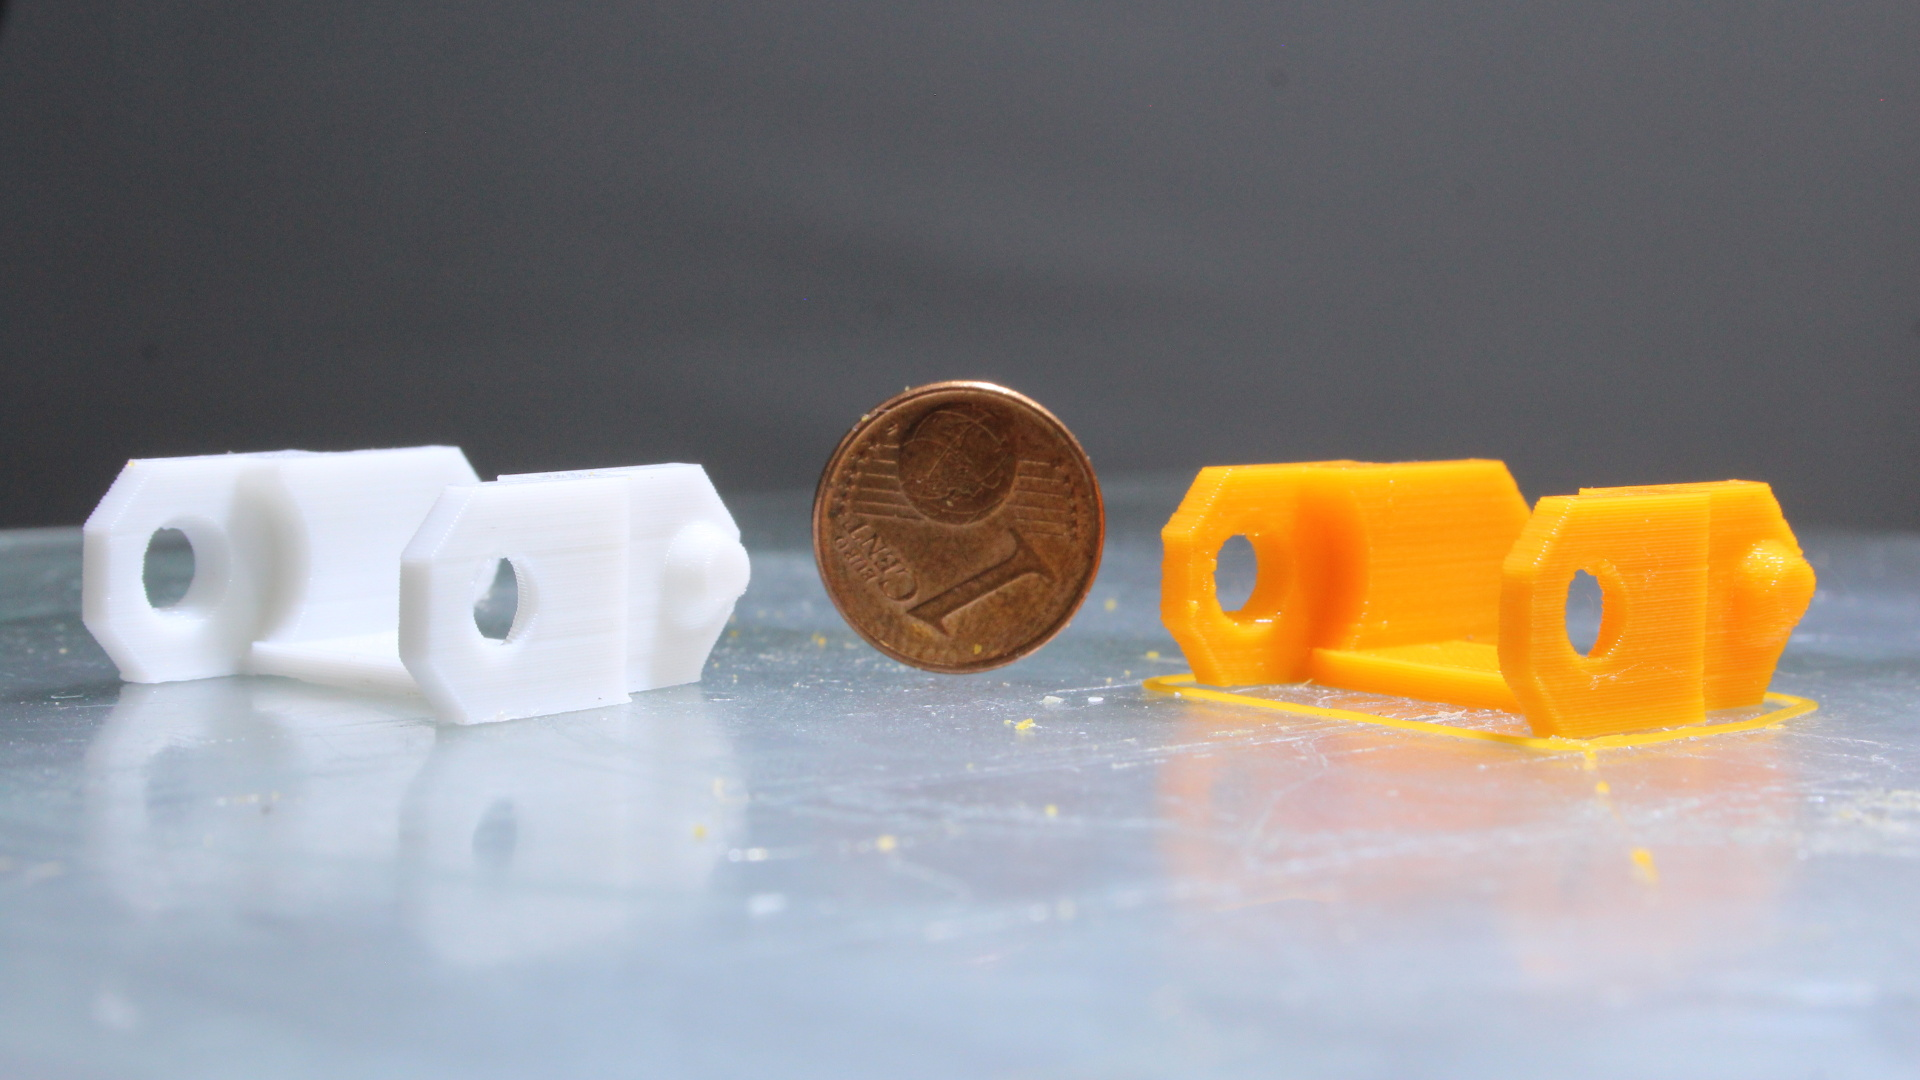 A 3D printed part with the granule extruder (Right). The comparison part on the left is printed with Ender 3. Image via homofaciens.